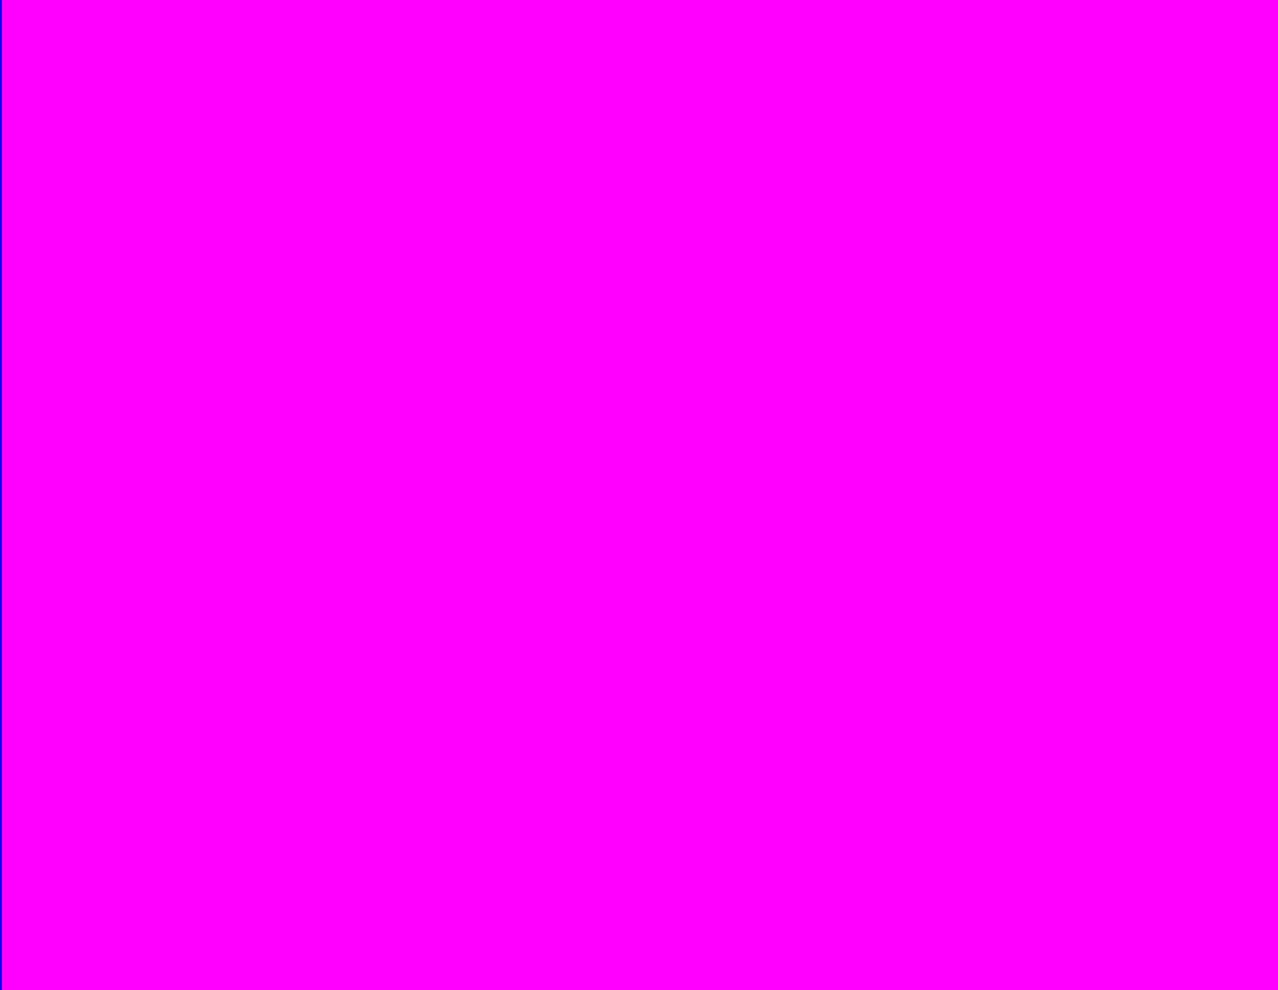 Magenta rectangle